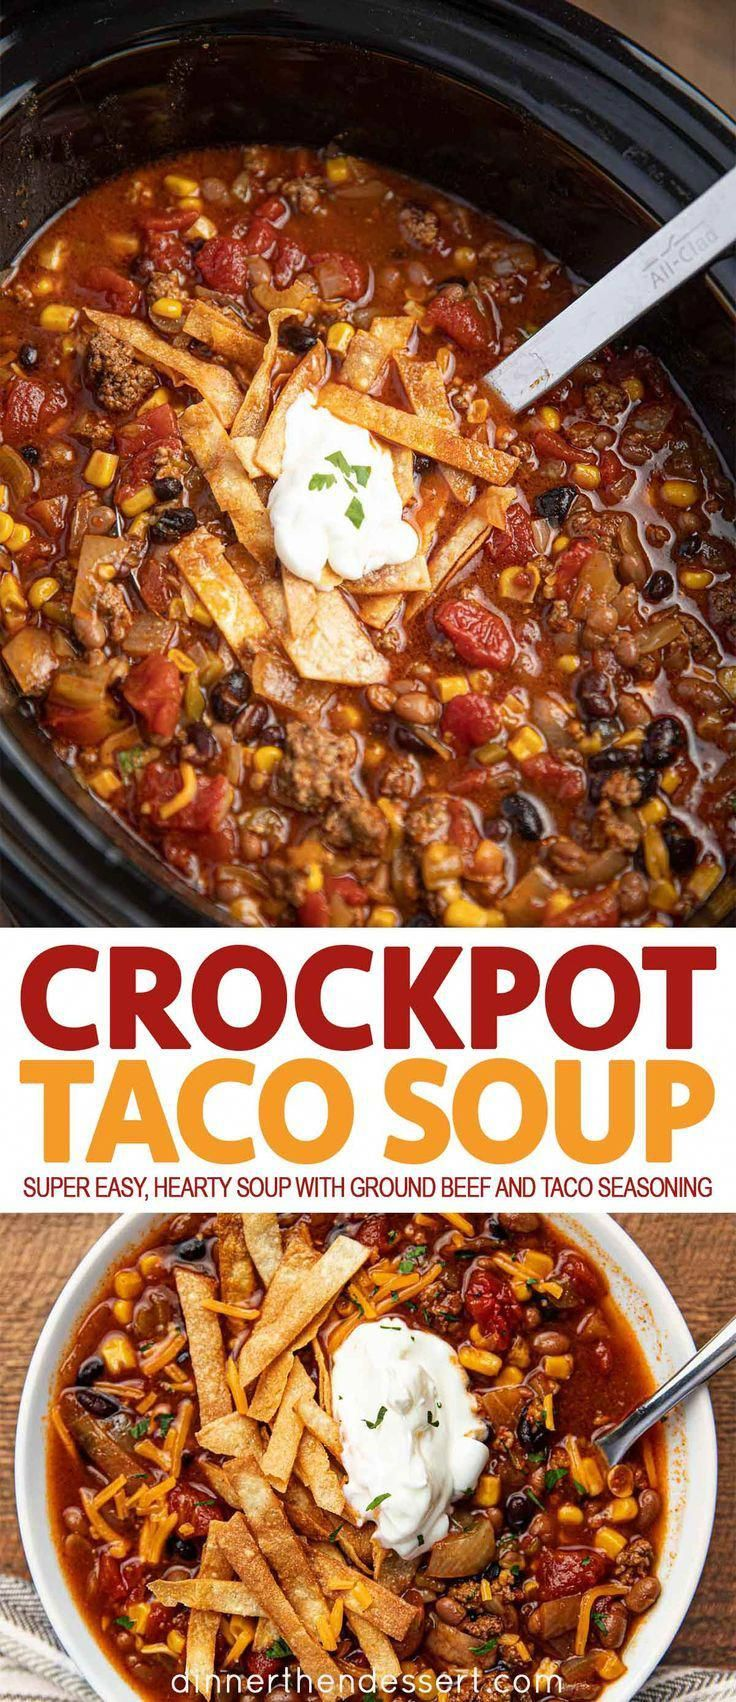 Express Sugar Donuts Clean Eating Snacks Recipe In 2020 Slow Cooker Tacos Soup With Ground Beef Crockpot Recipes Easy